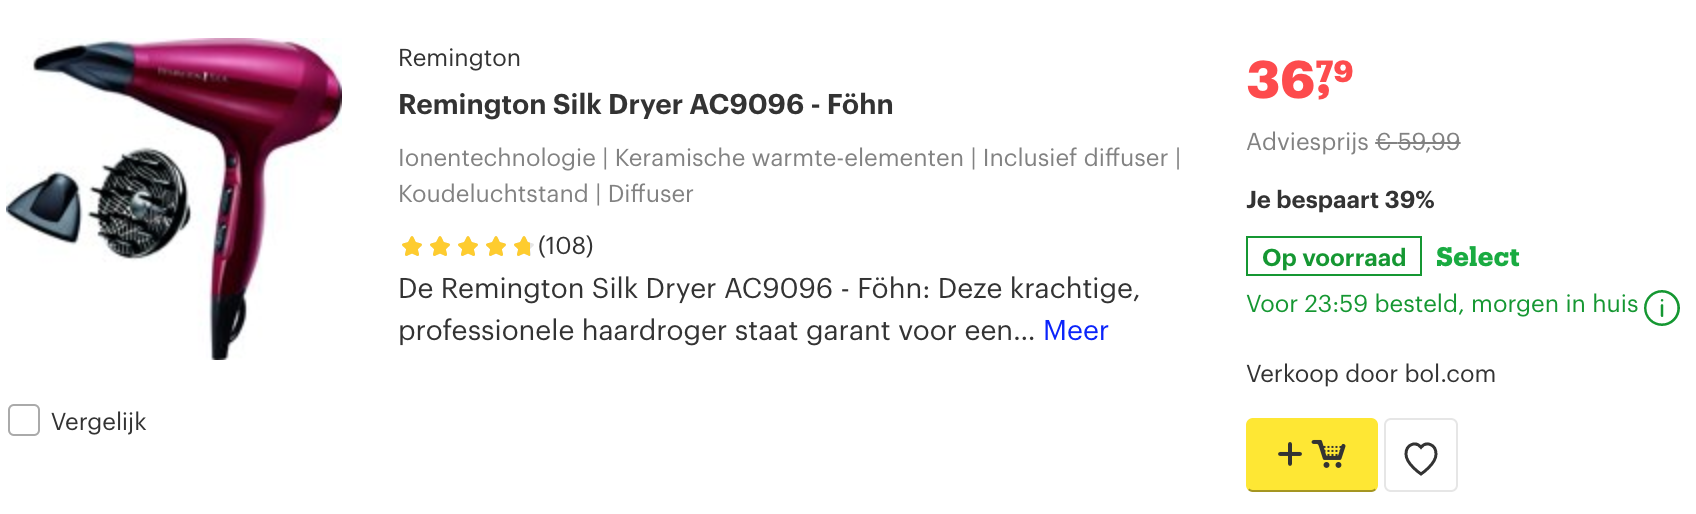 Remington Silk Dryer AC9096 - Föhn krullend haar